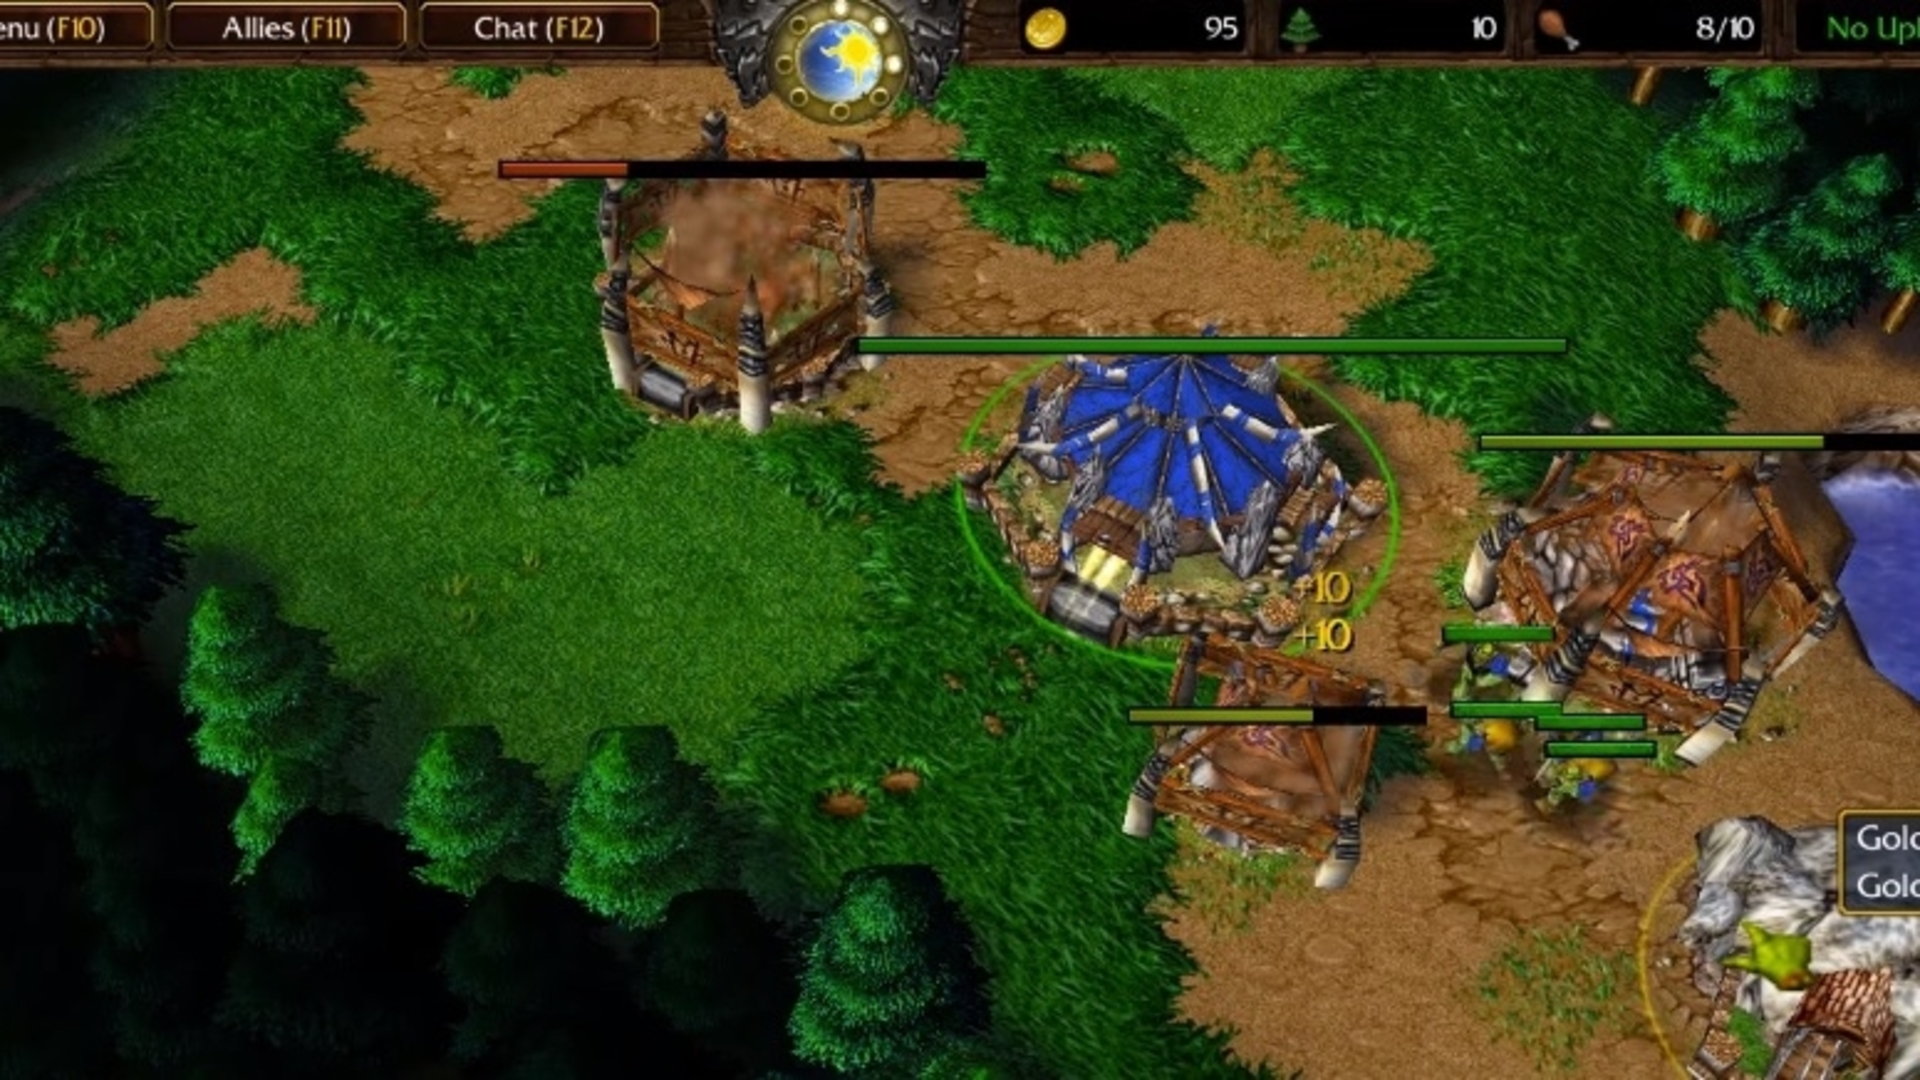 Warcraft 3 remastered release date | When is warcraft